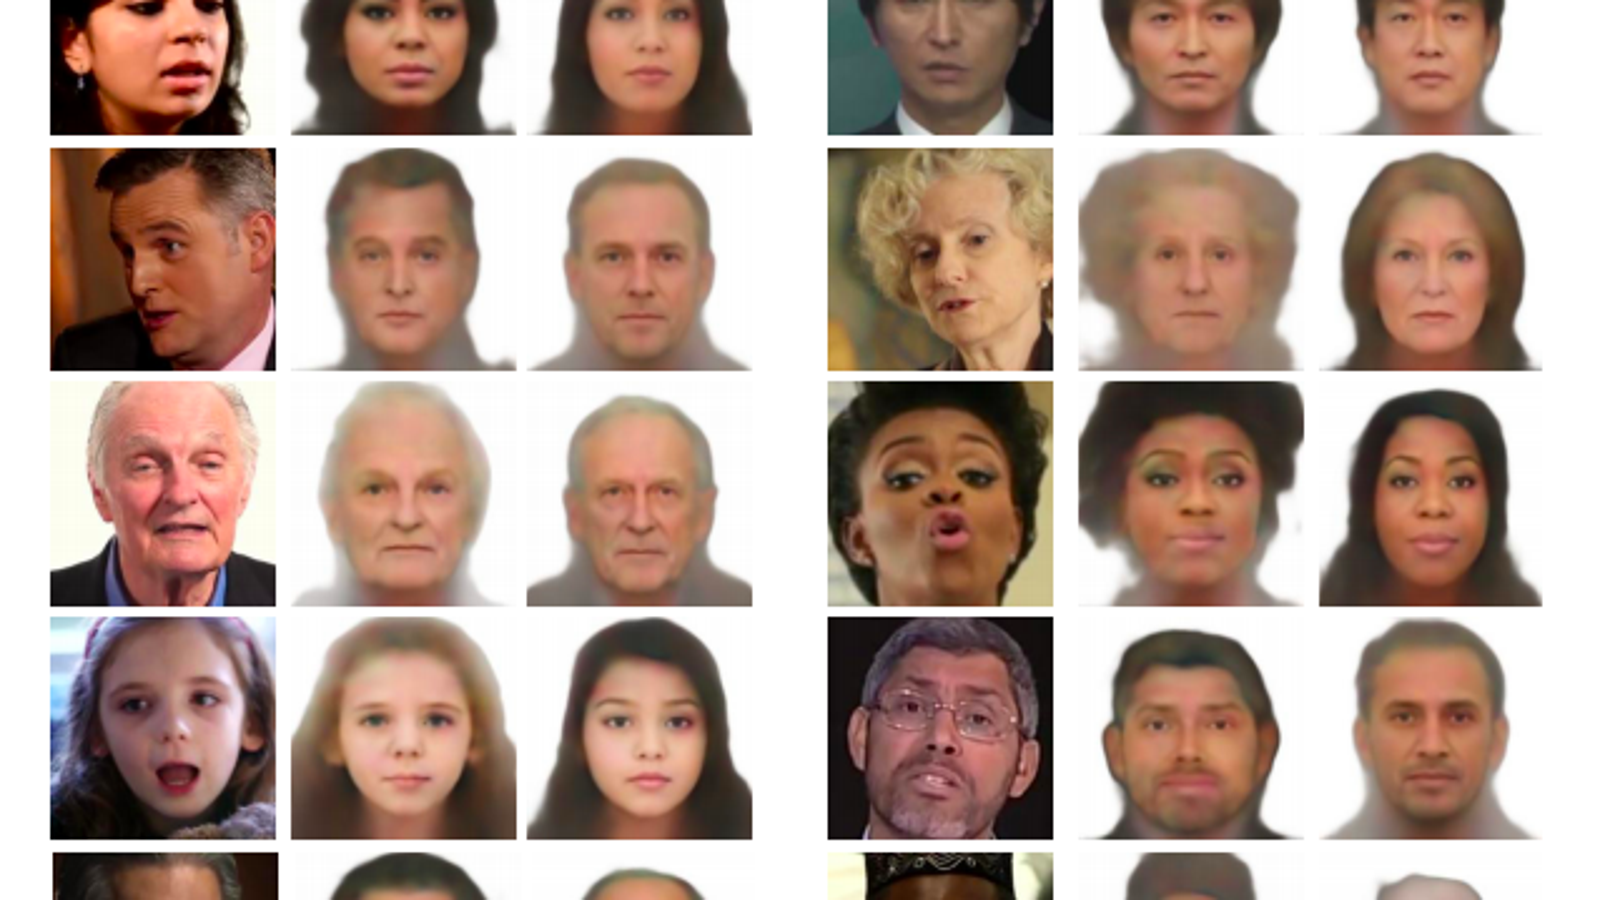 An Algorithm Generated Eerily Accurate Portraits Based Only On Someone's Voice